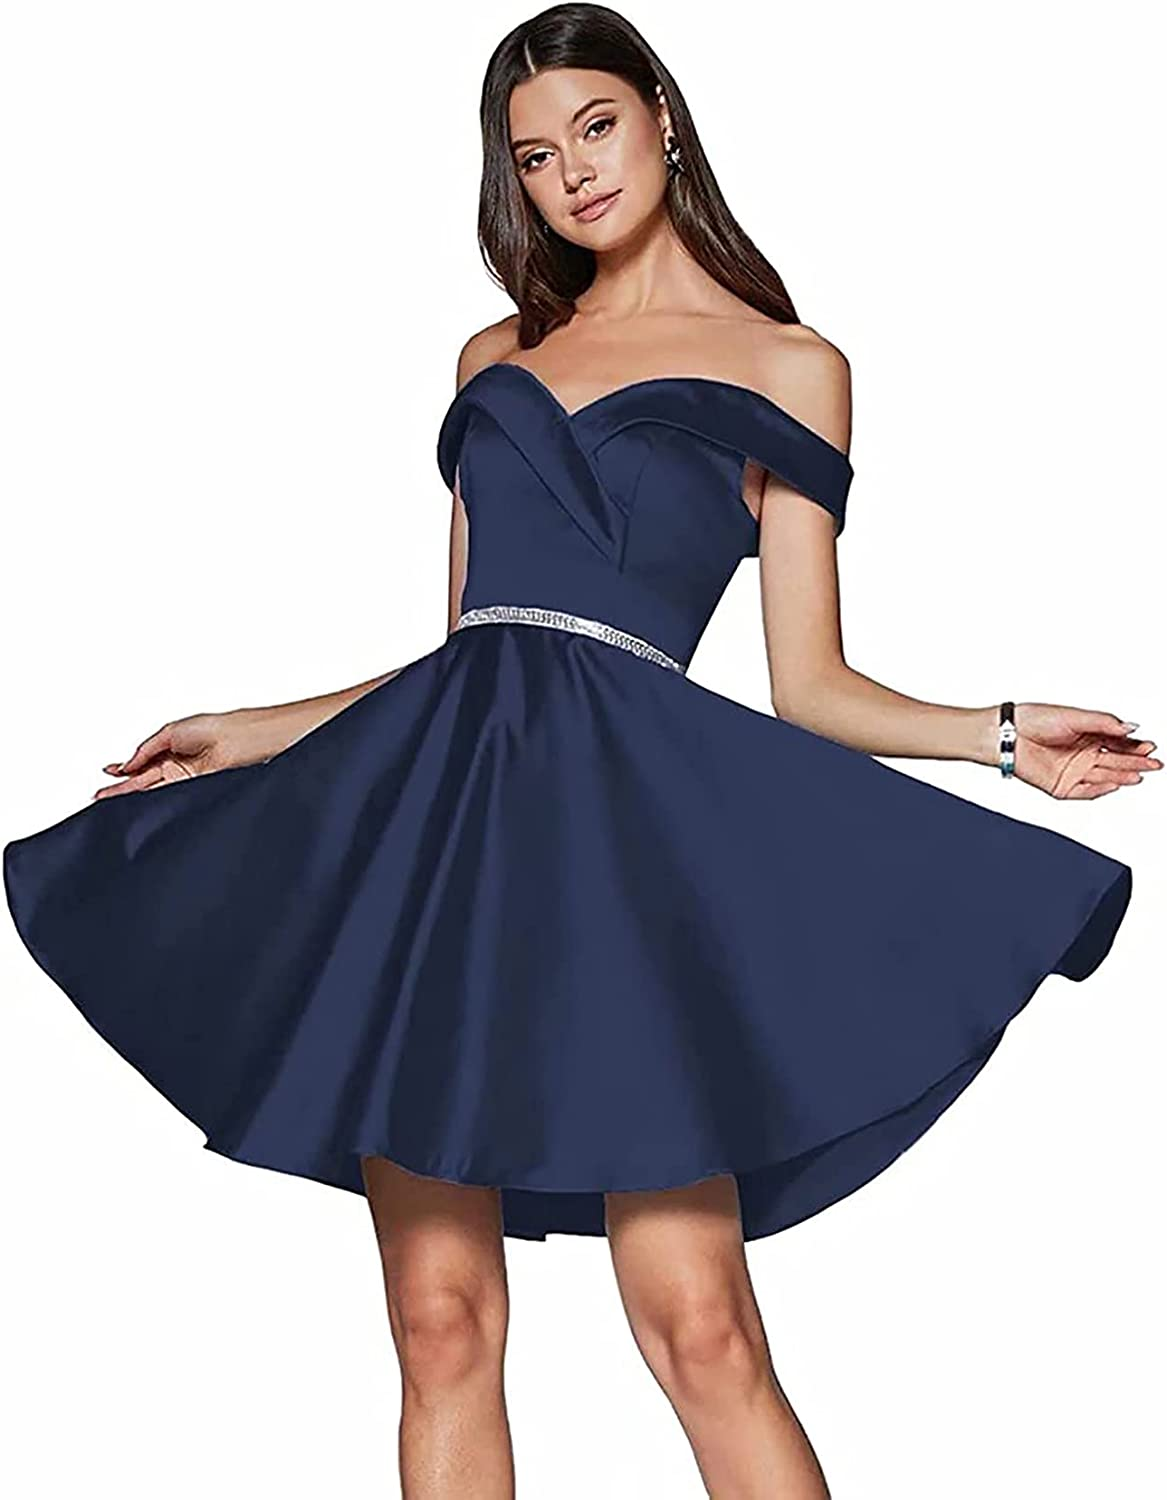 Homecoming Dresses for Teens Short Cocktail Juniors Party Skirt Prom Dress Beaded Belt Mini Off The Shoulder